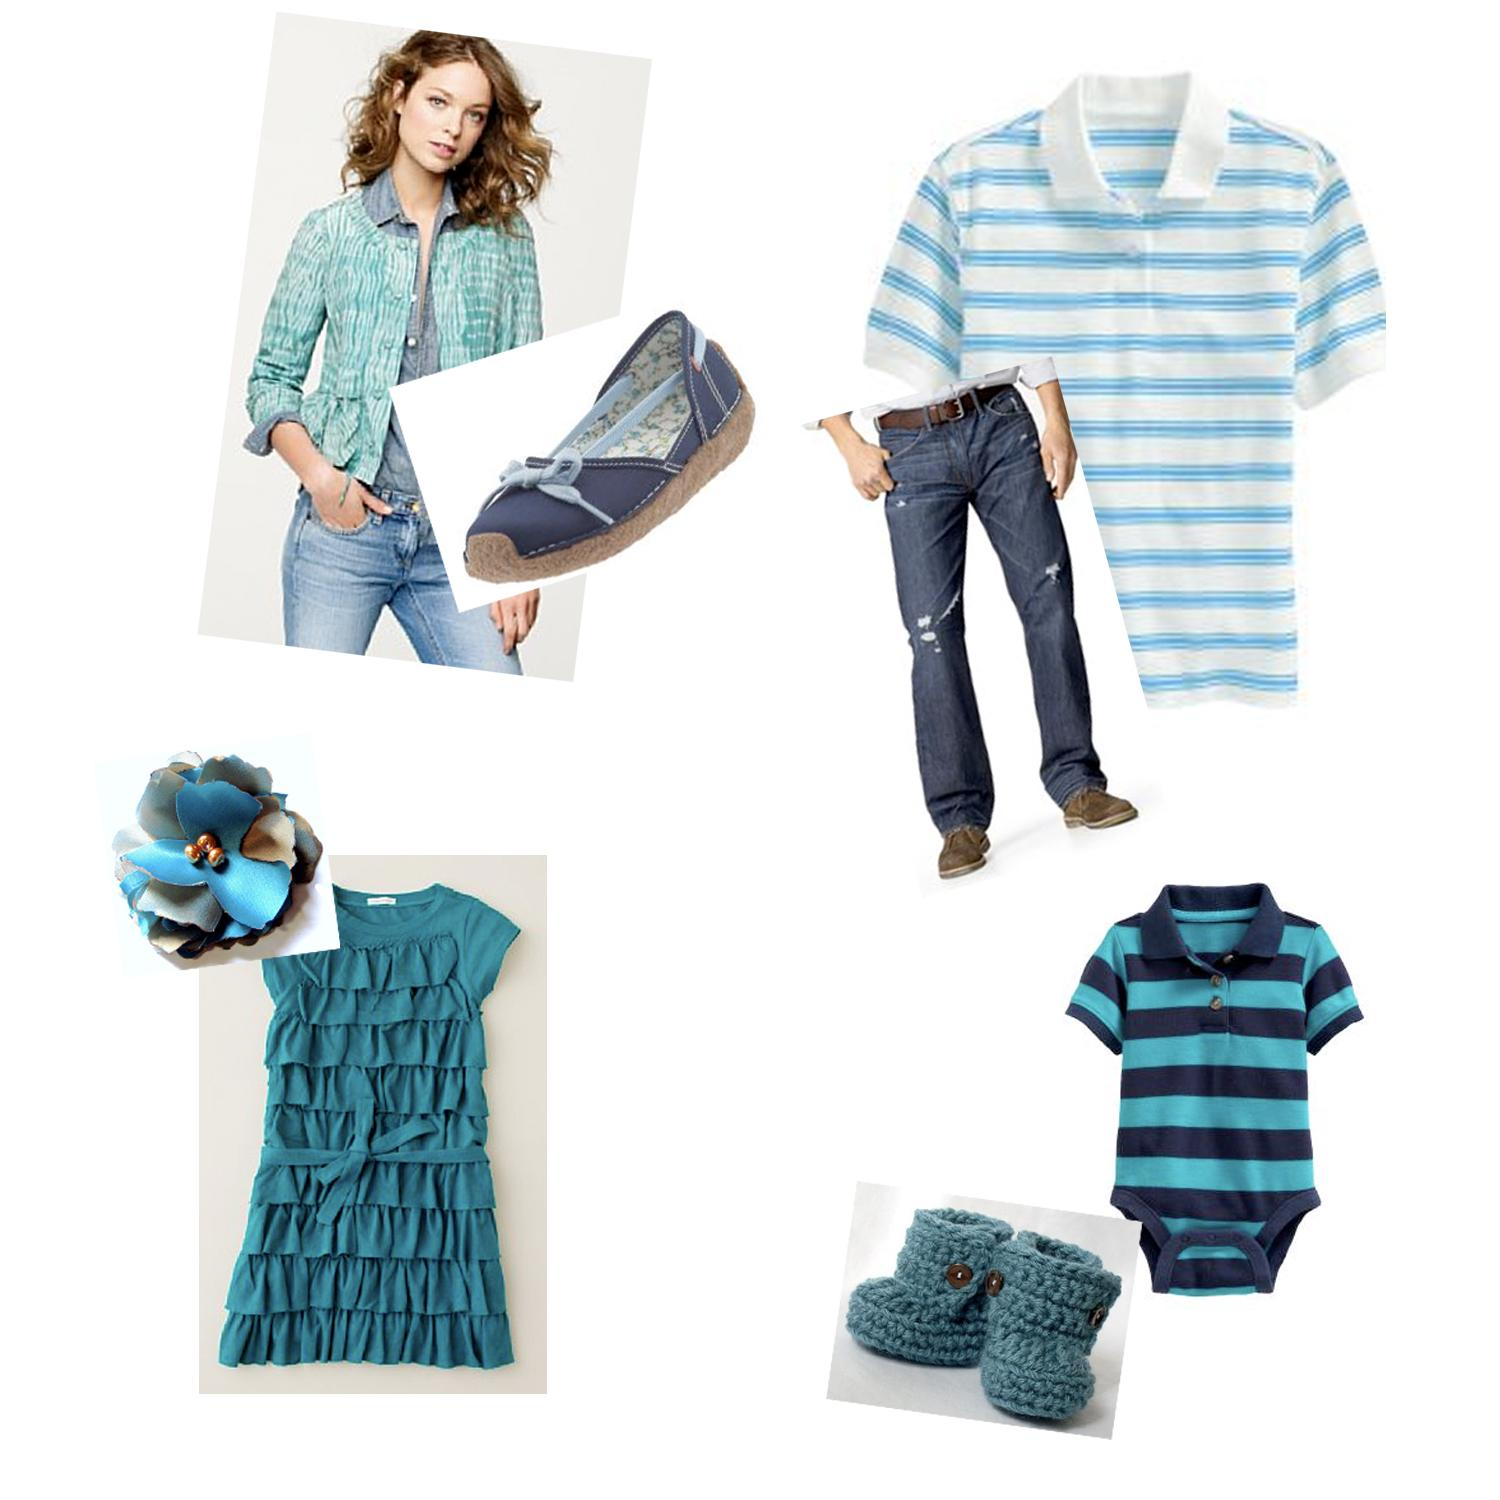 Here I chose denim, teal and